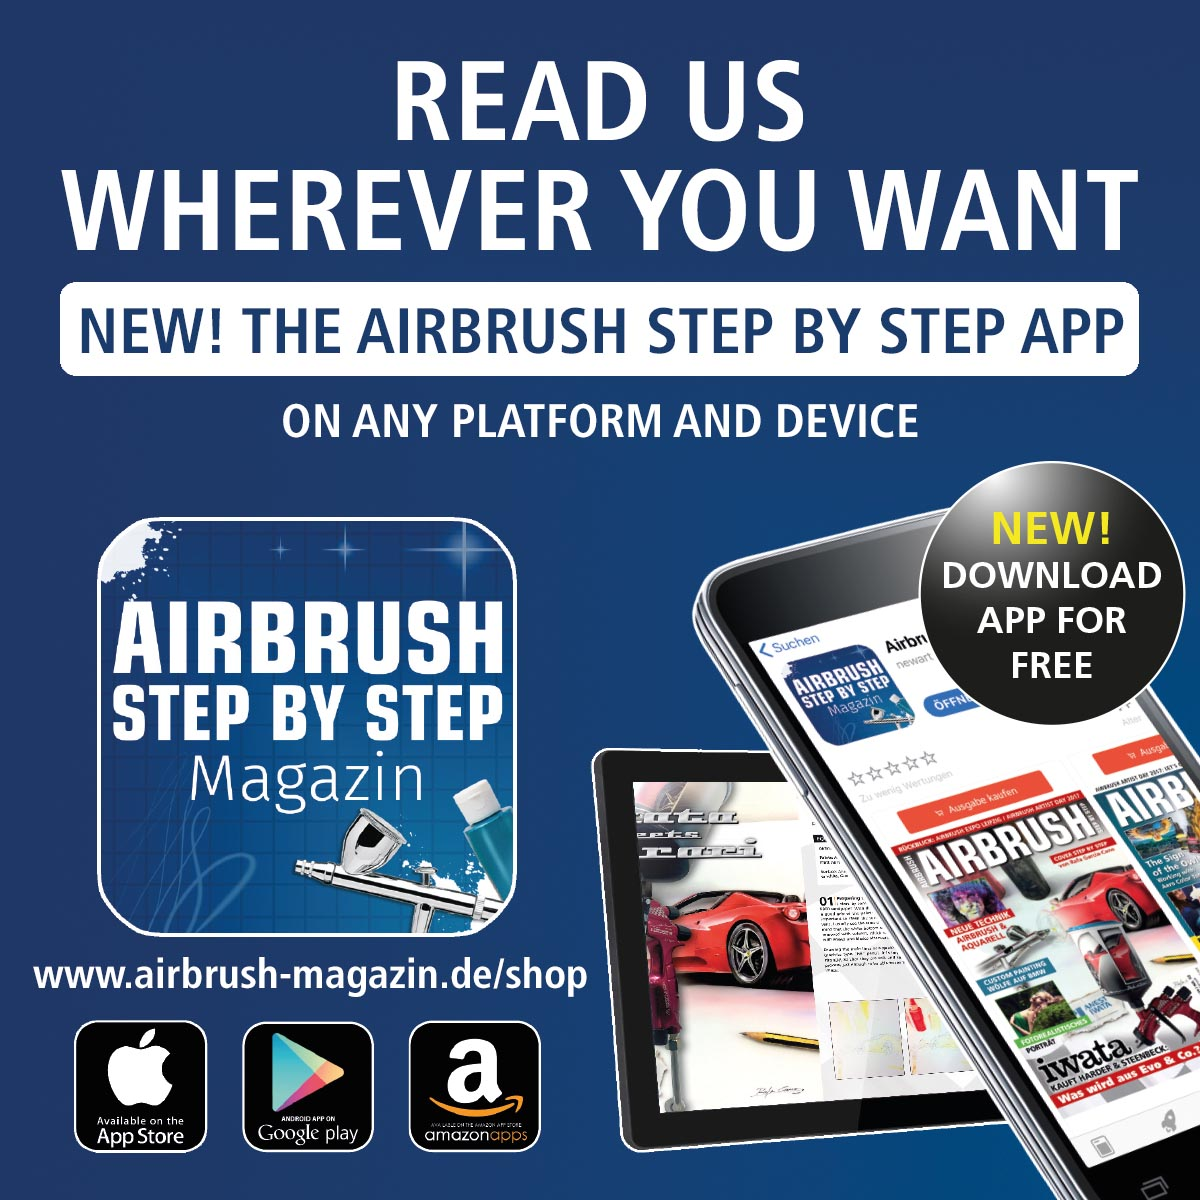 Download now: The new Airbrush Step by Step app